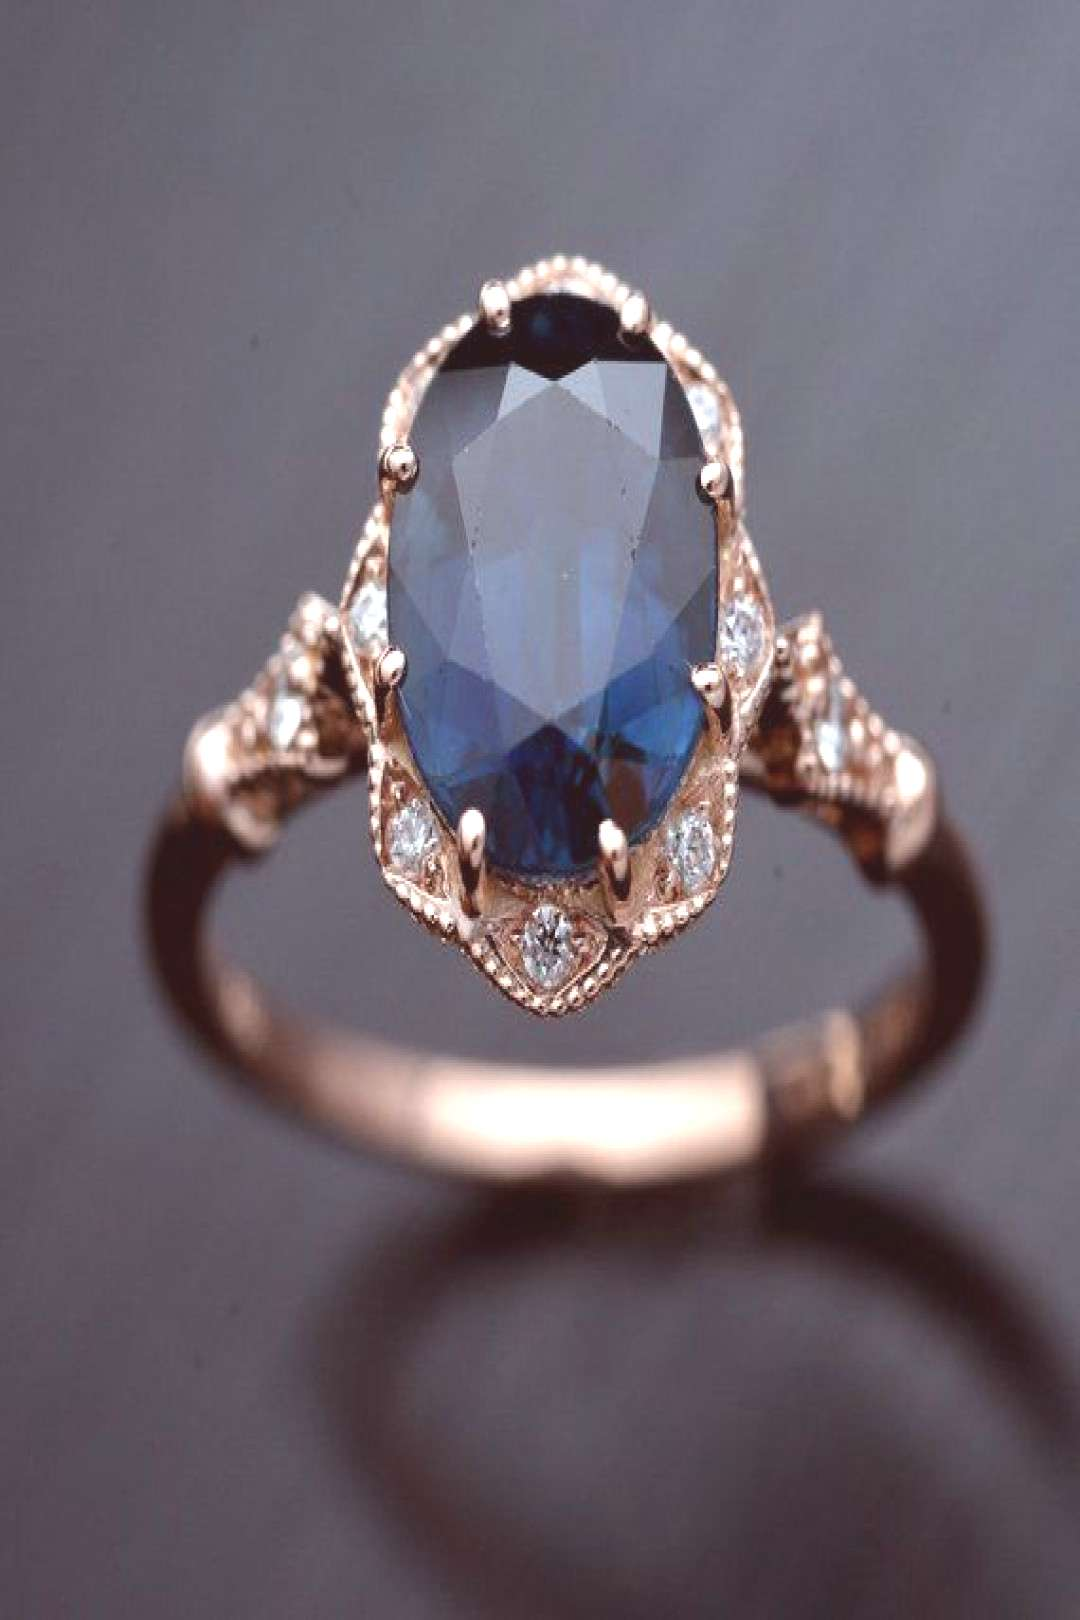 Halo engagement ring with a natural deep blue Australian sapphire vintage style with natural diamon